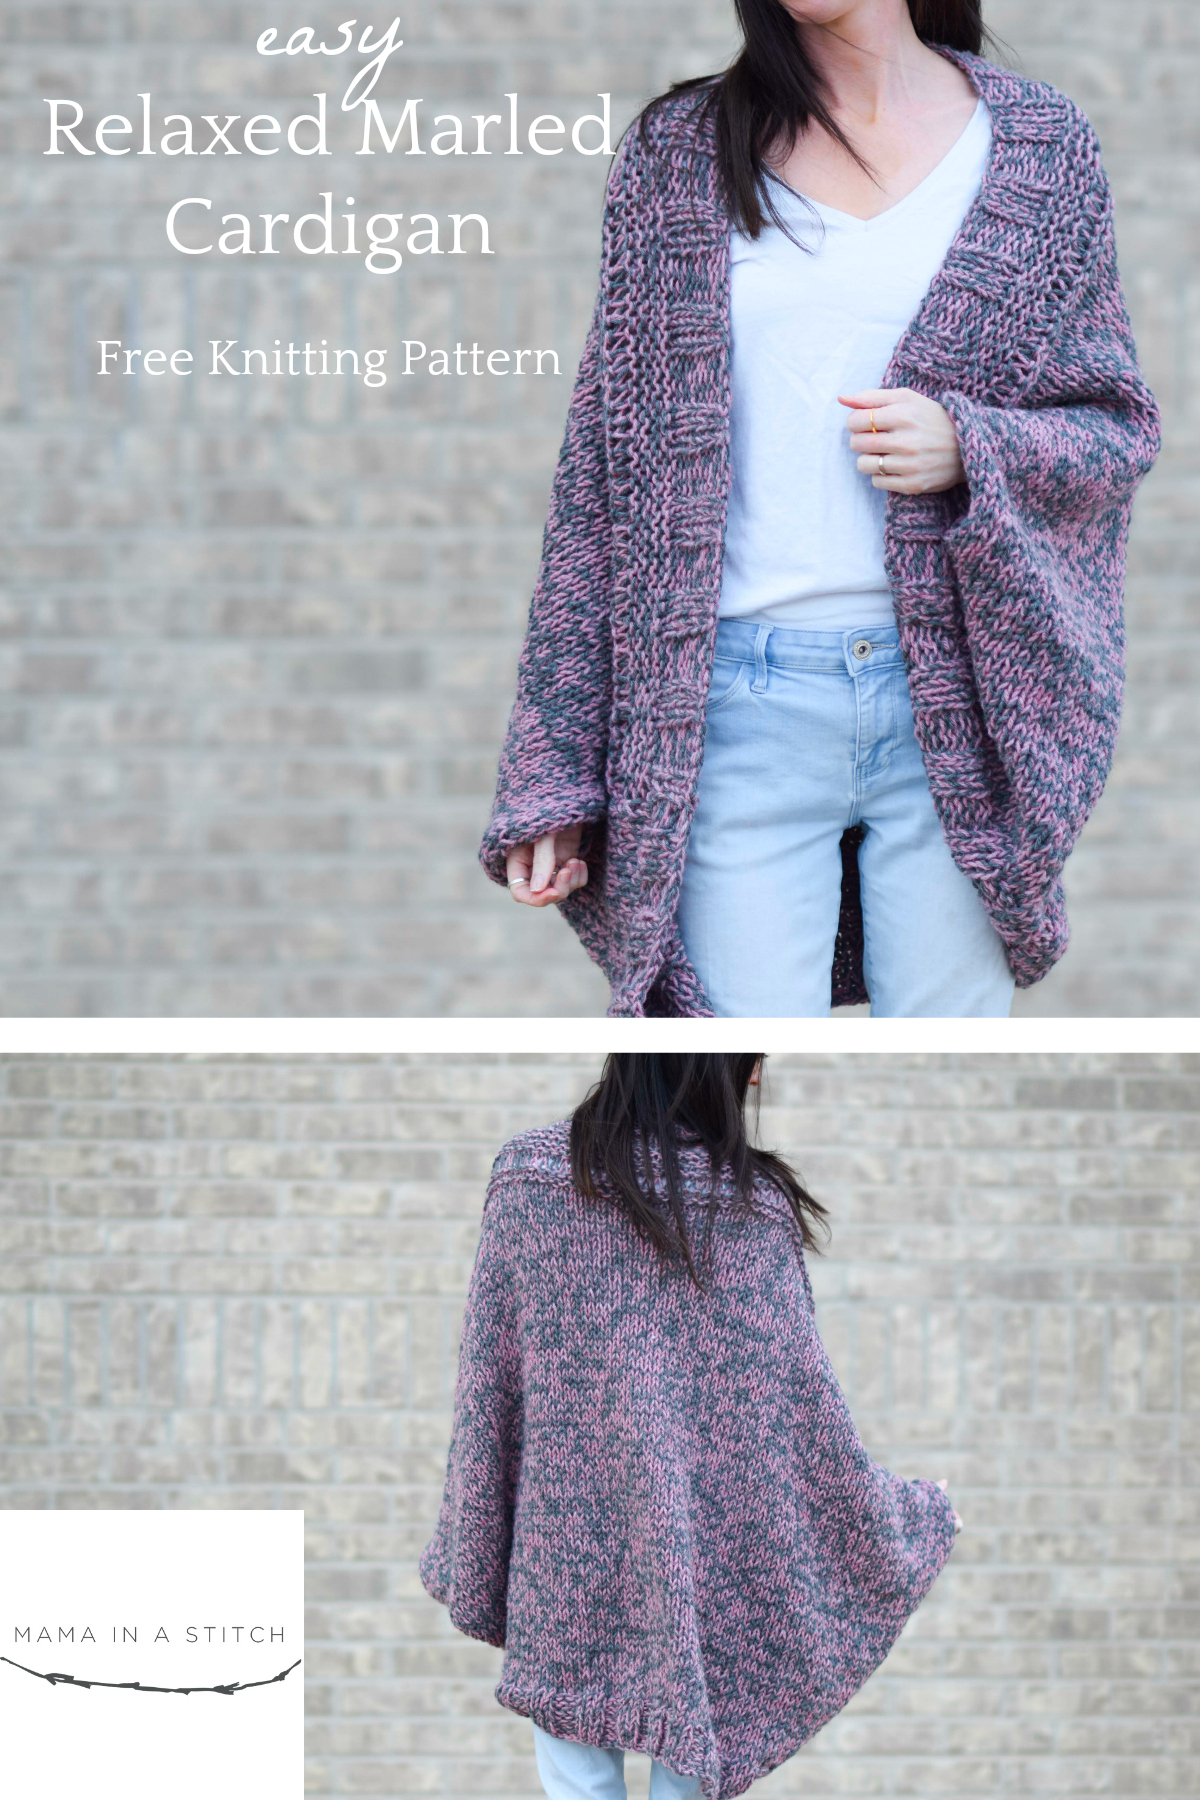 Easy Jumper Knitting Pattern Easy Relaxed Marled Cardigan Knitting Pattern Mama In A Stitch